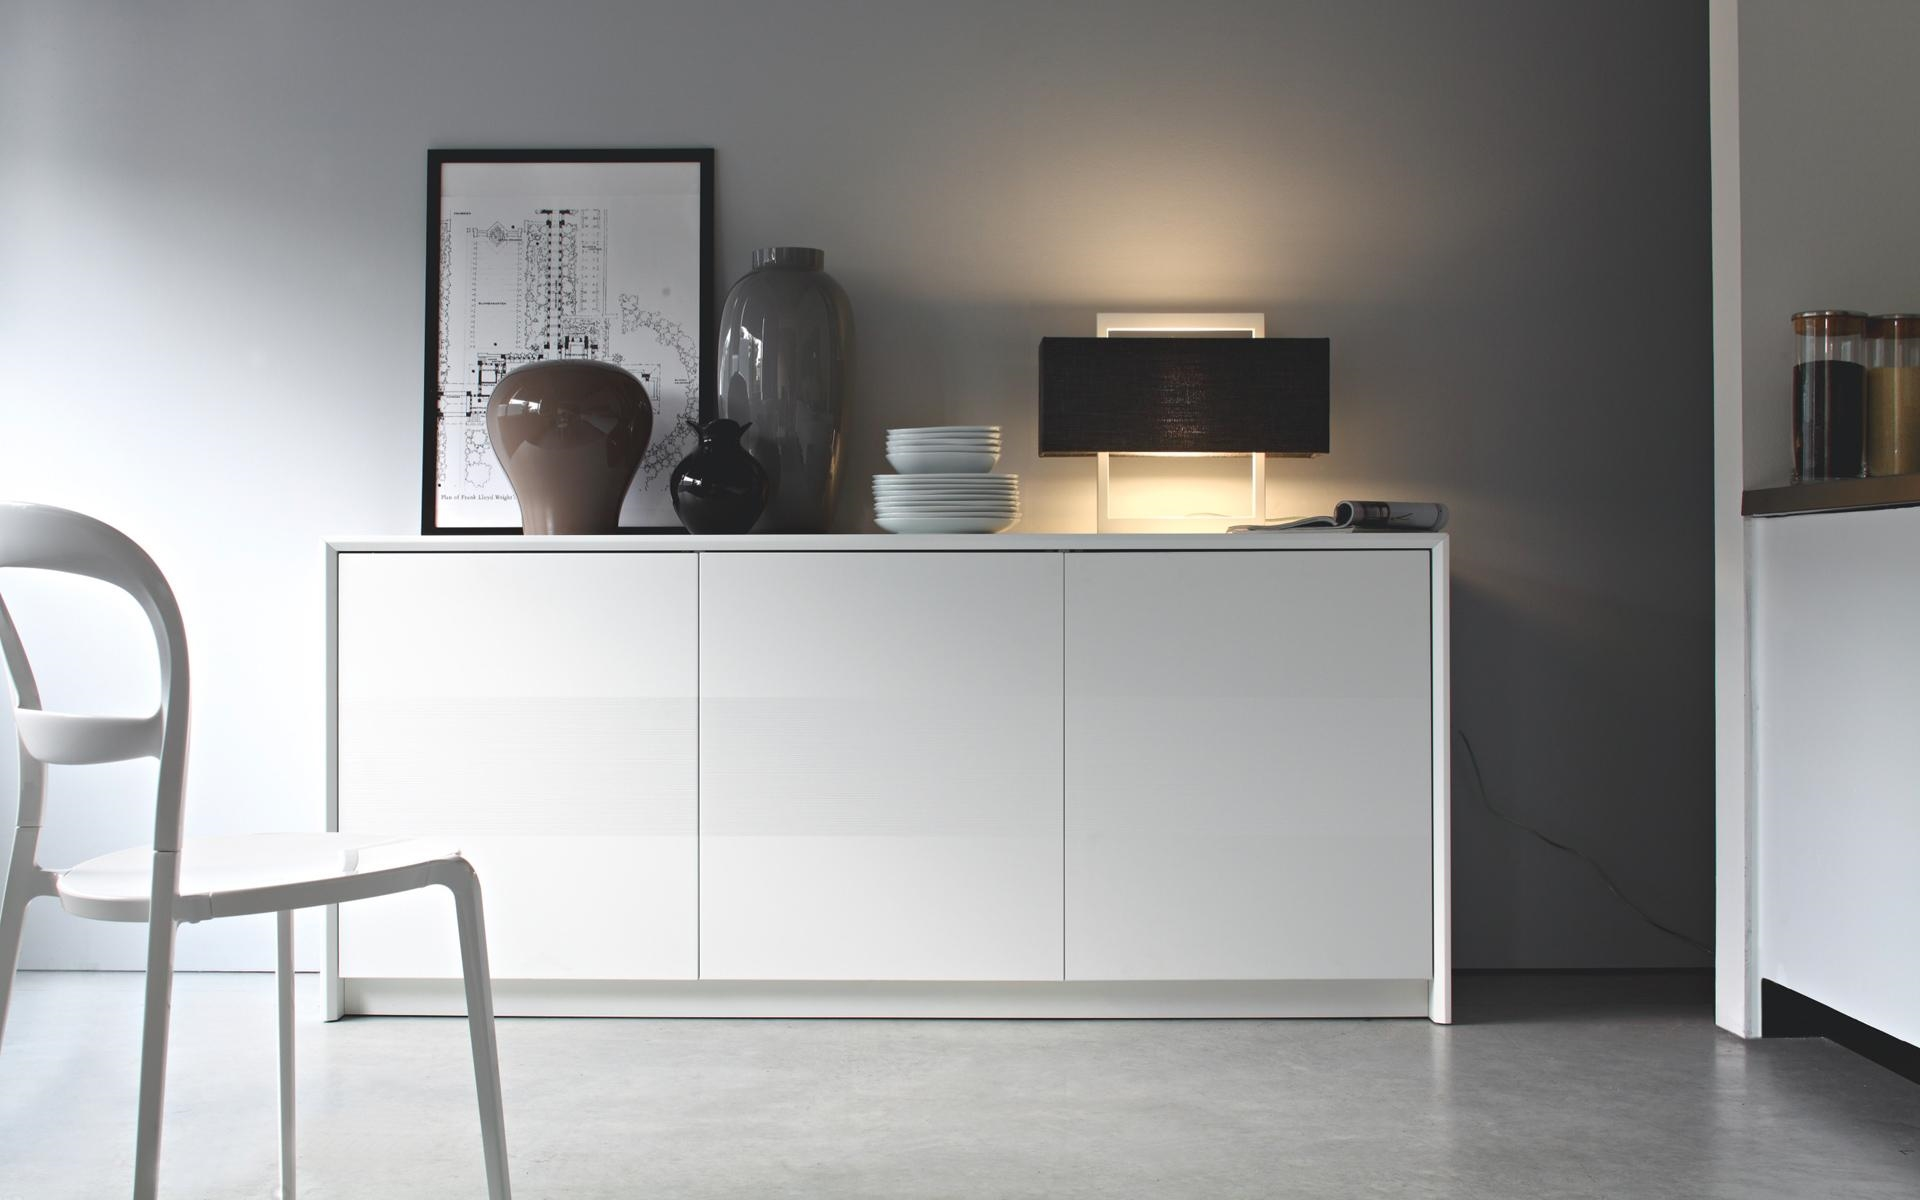 Calligaris madia password laccato opaco soggiorni a for Ingressi moderni calligaris